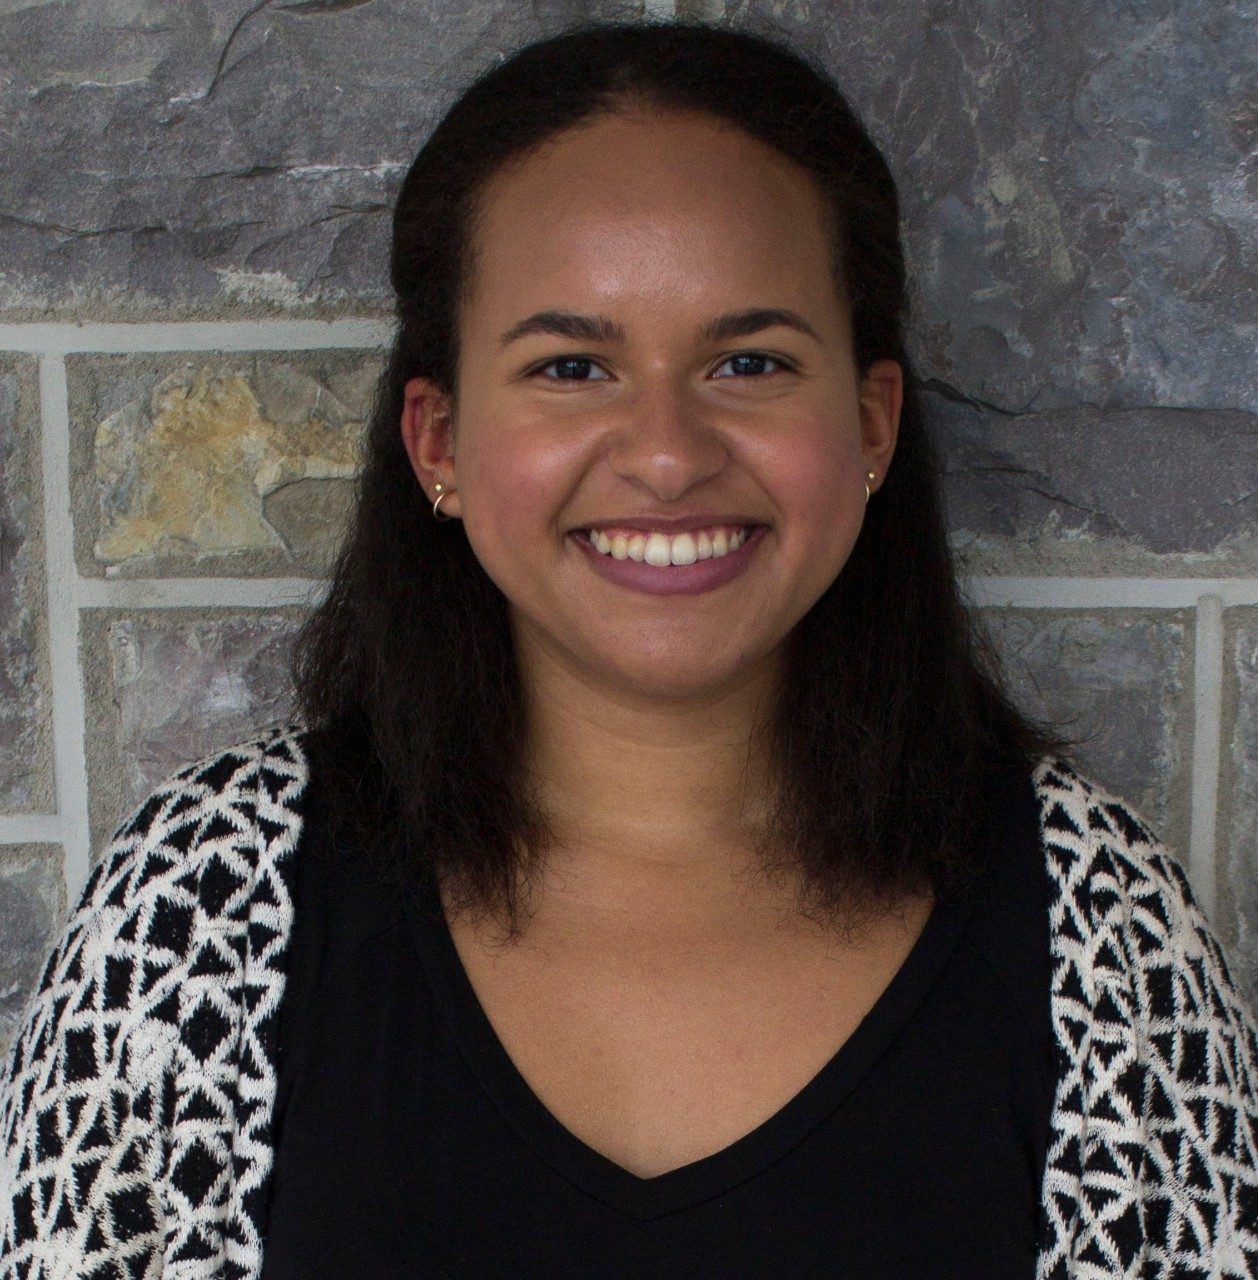 While earning double majors in political science and French, Maria had three internships. First, she was a research intern at EMILY's List, an organization based in Washington D.C. that works to elect women to political office. Next, she interned for a local political campaign that elected a Virginia Delegate. These experiences helped her land an internship with NextGen America, a political organization, in San Francisco, California. The hands-on experience in the political field from these internships ignited her  passion for politics and elections.